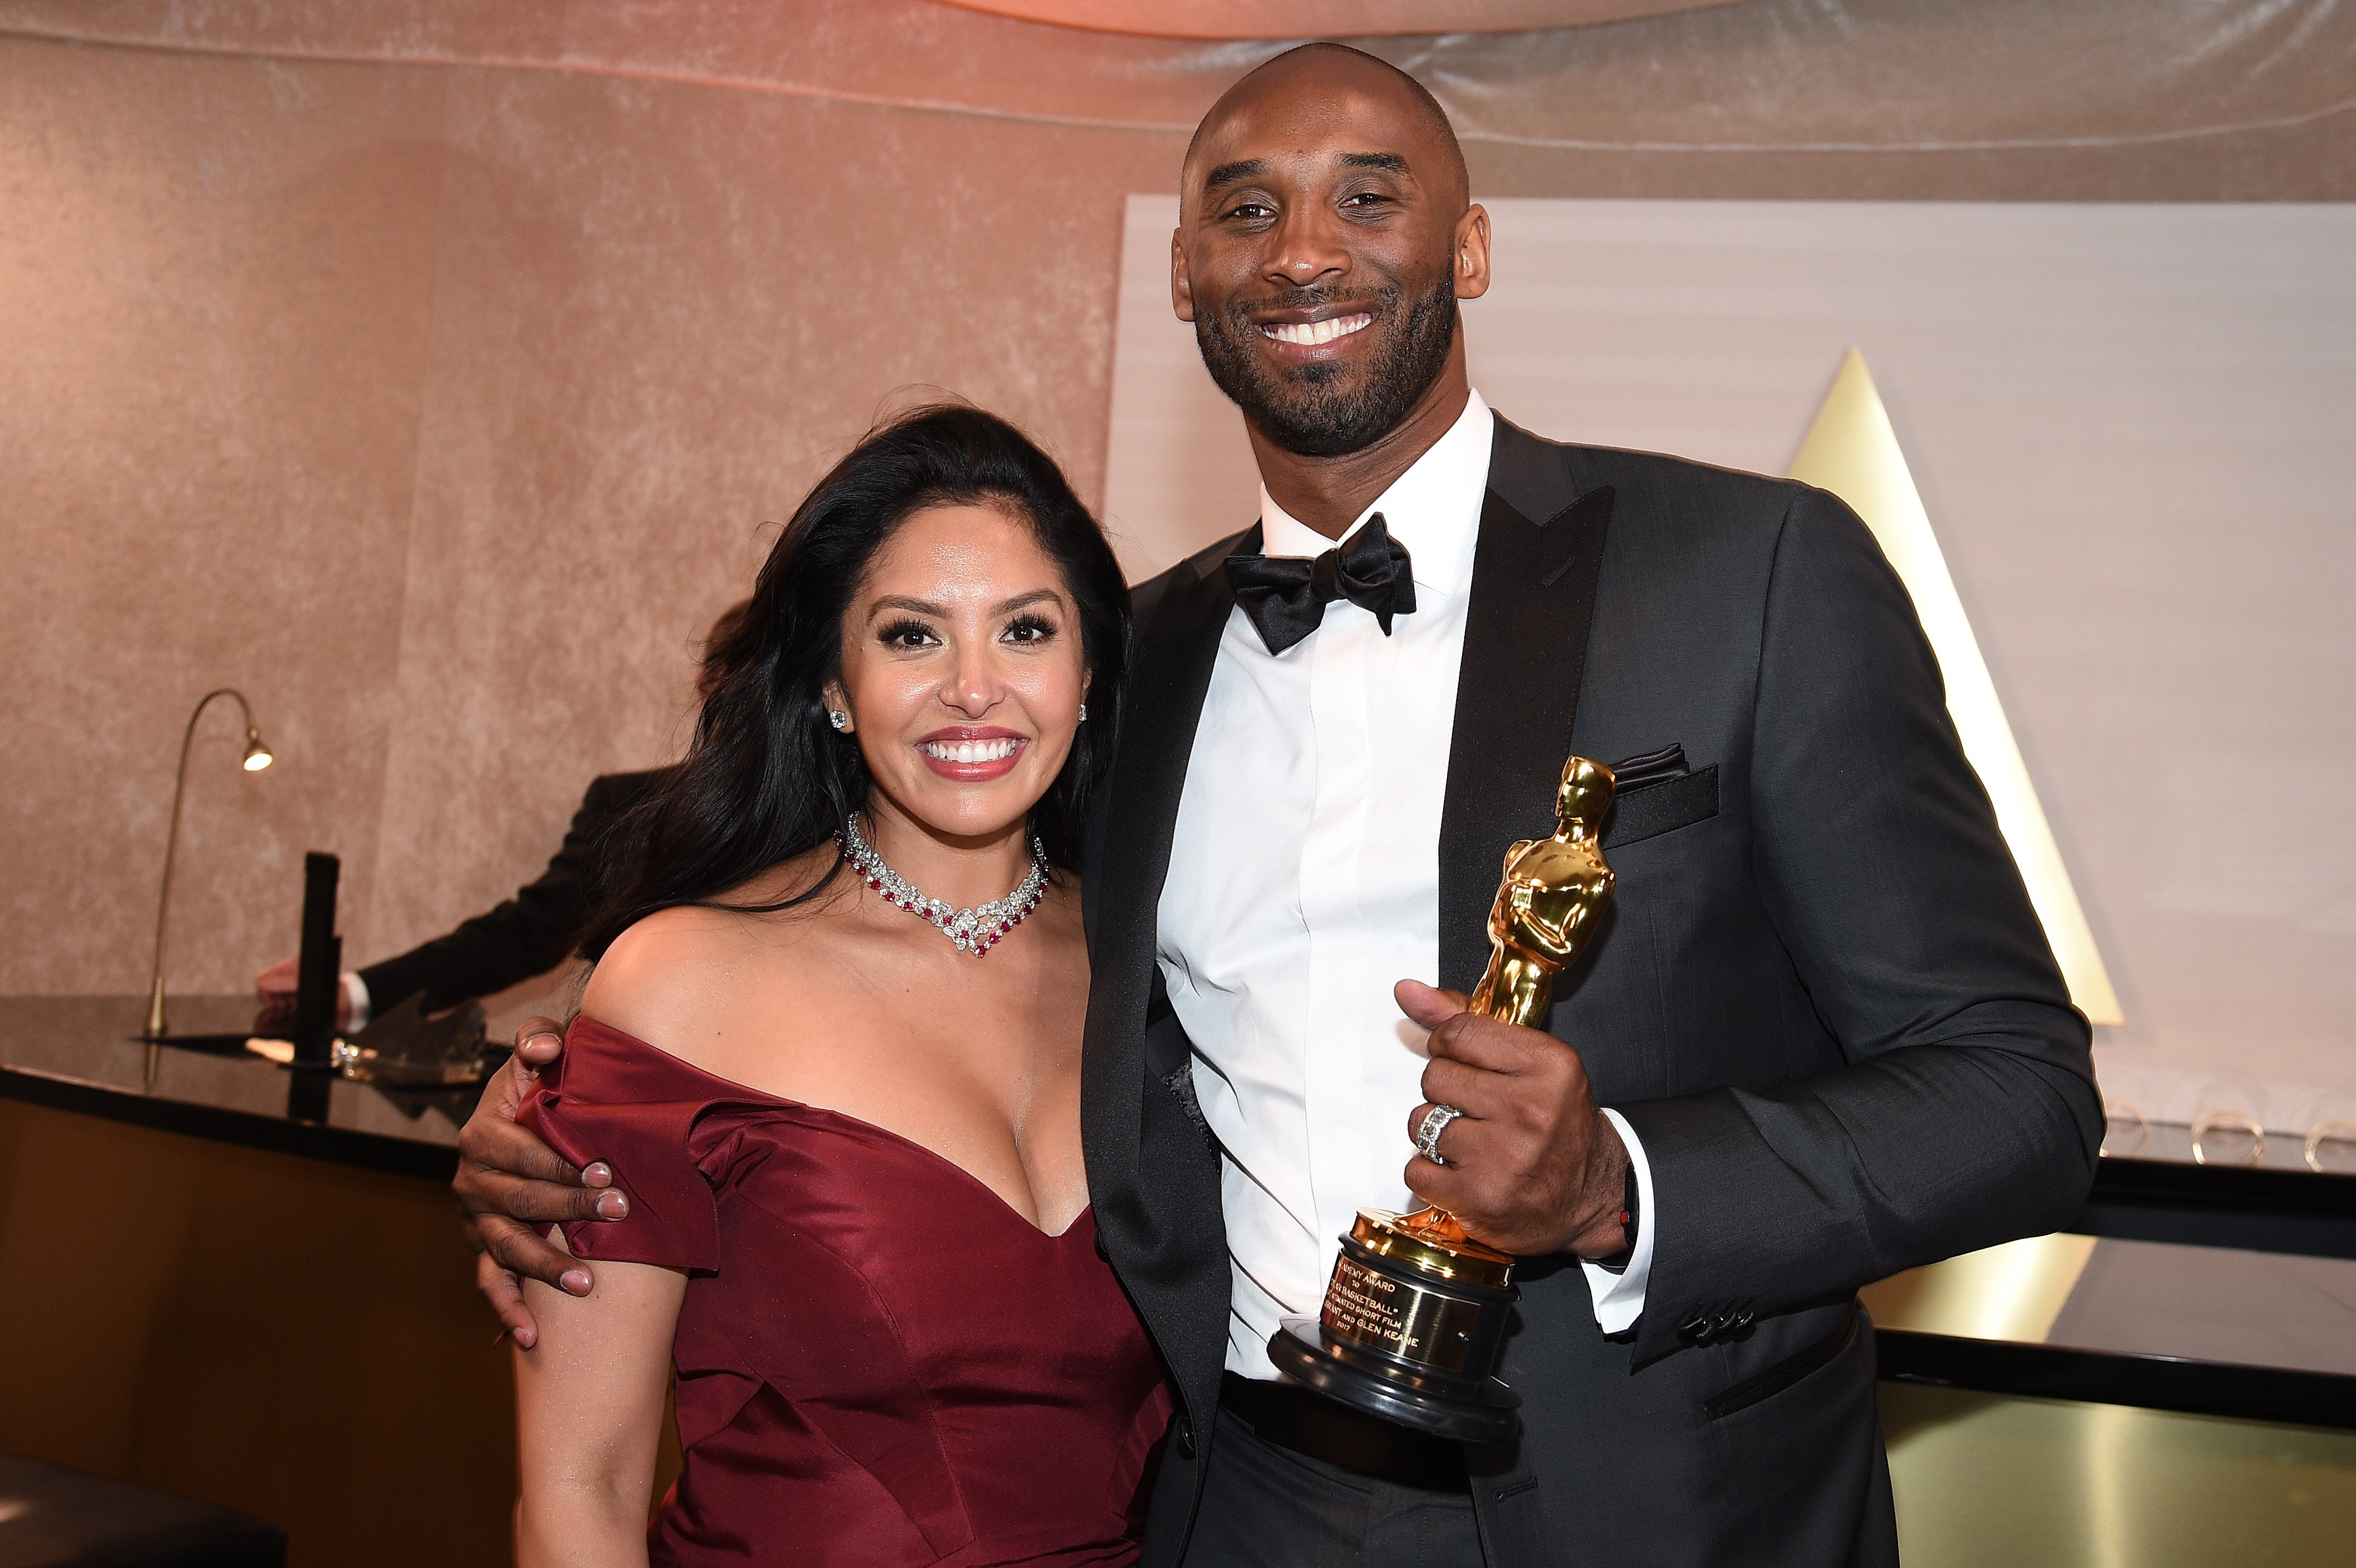 Kobe Bryant & Vanessa Bryant at the 90th Annual Academy Awards Governors Ball on March 4, 2018 in California | Photo: Getty Images